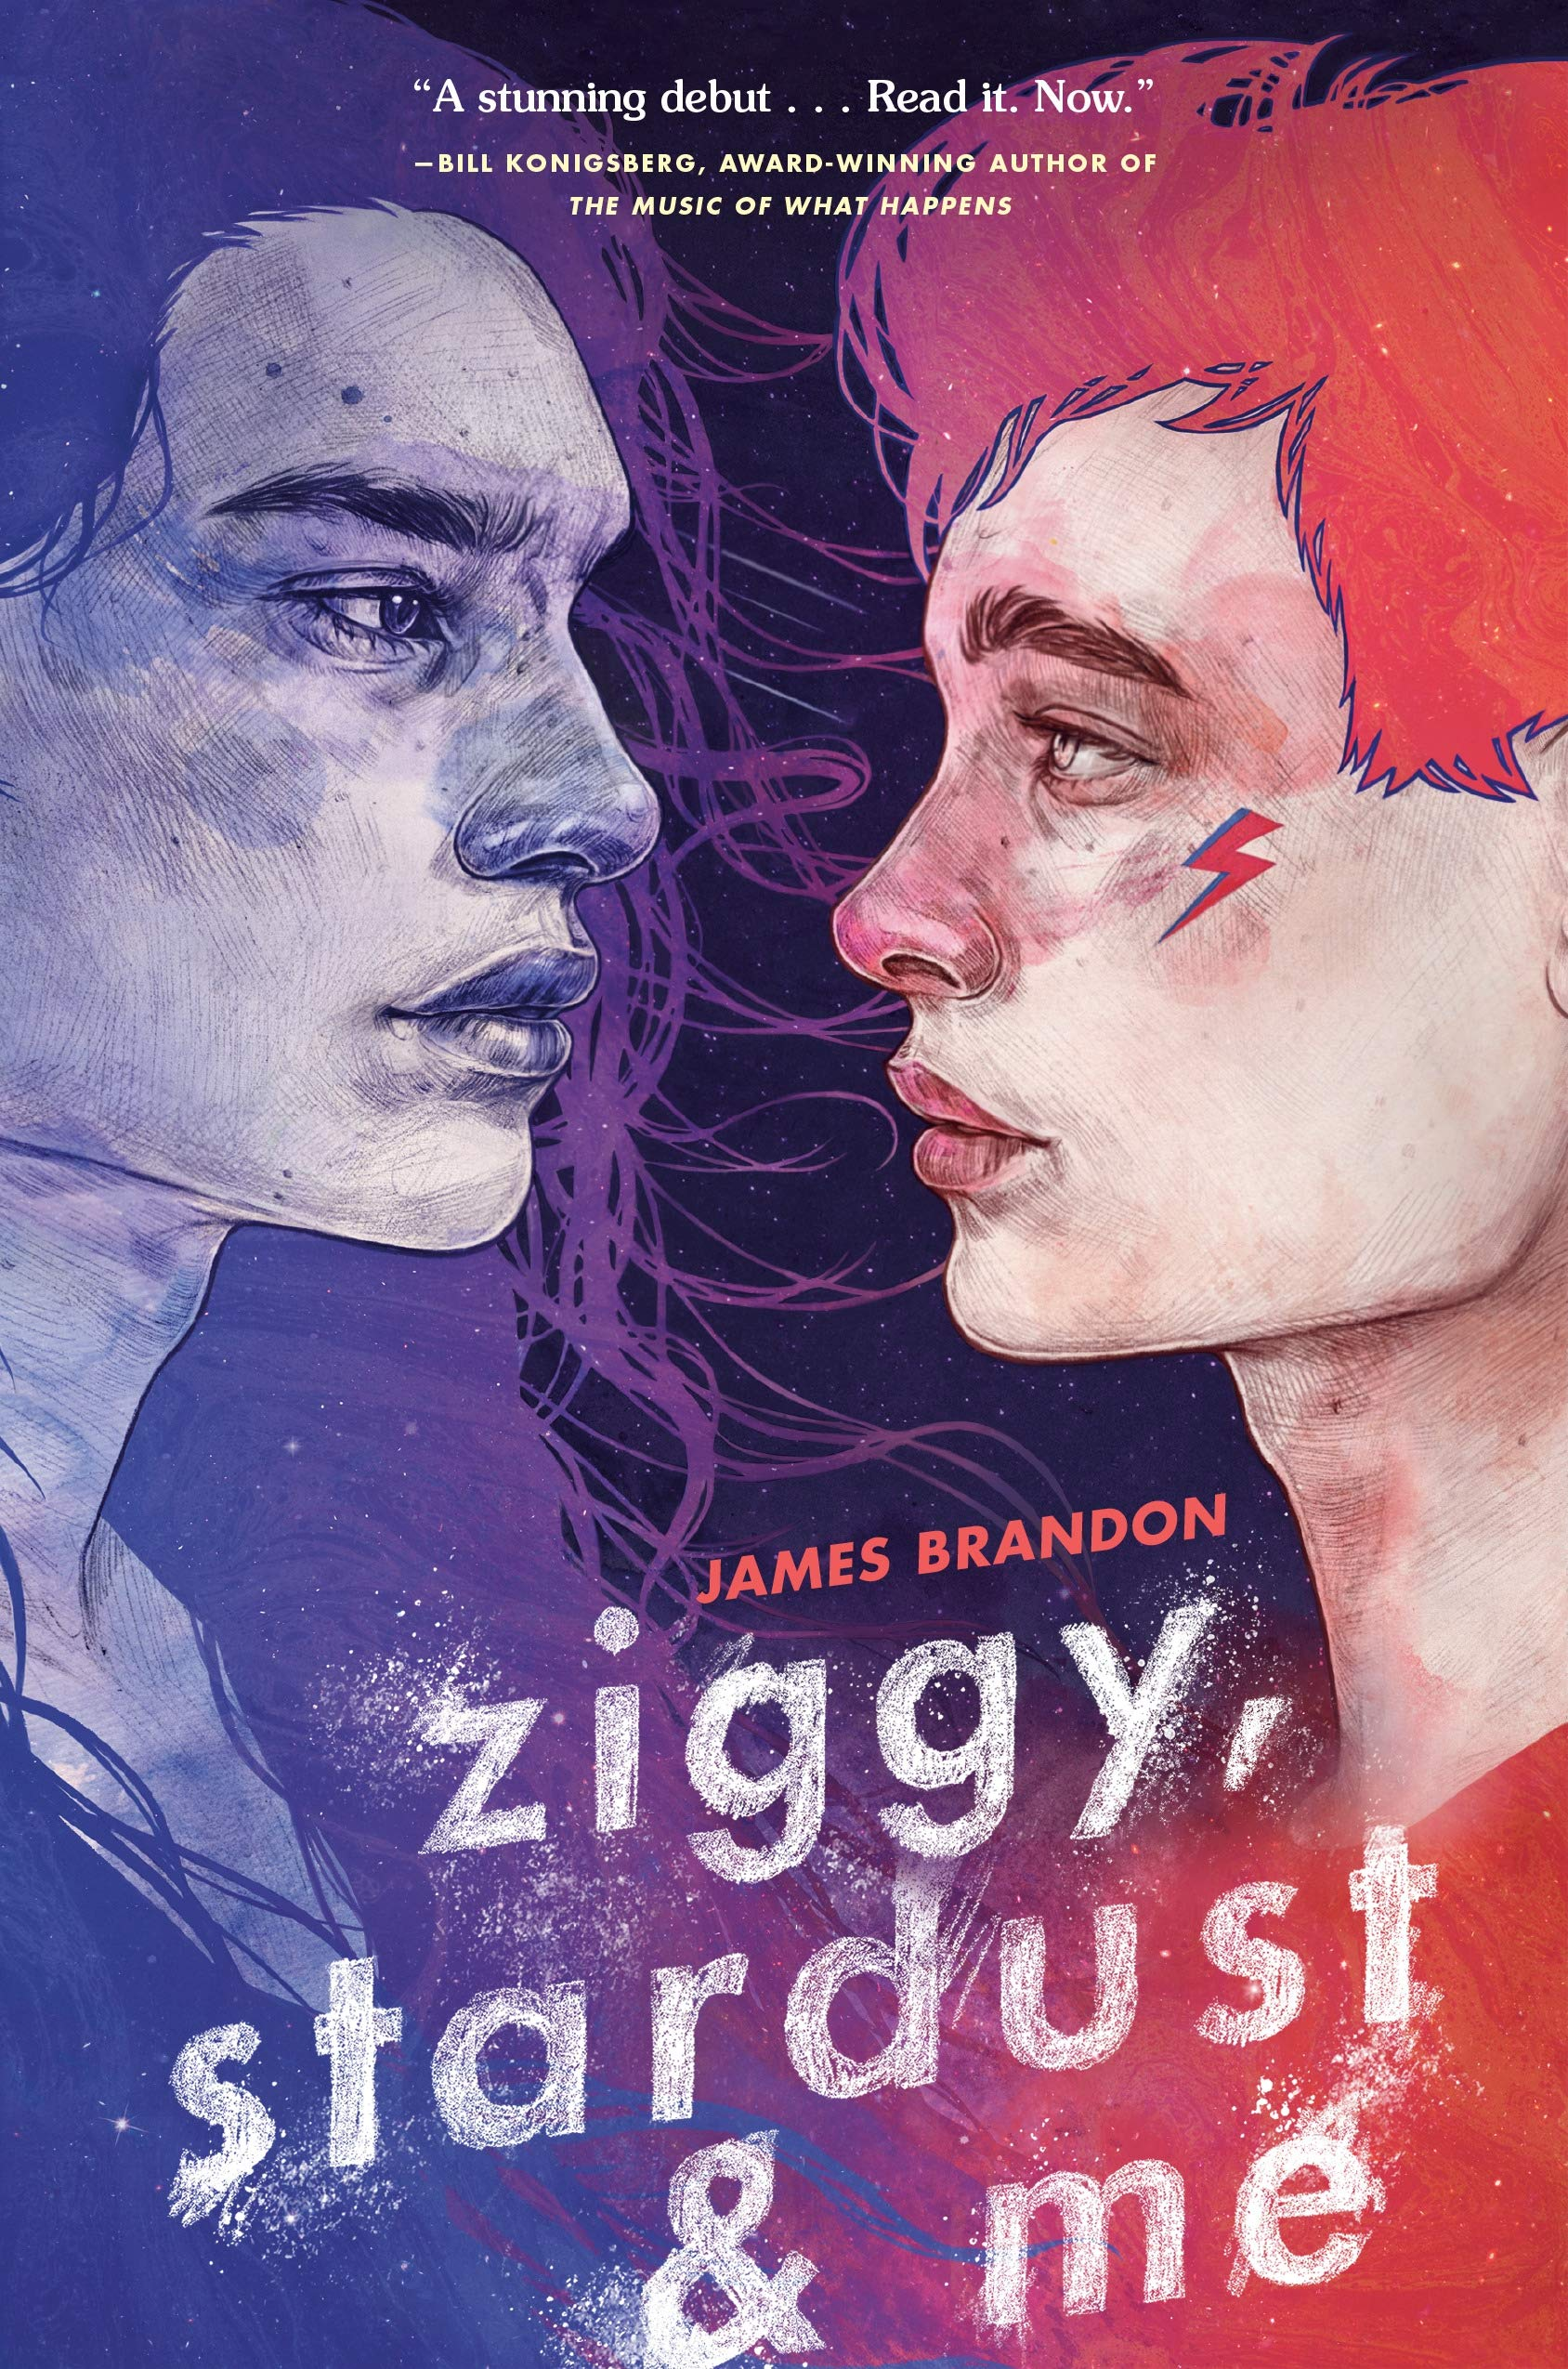 Cover of Ziggy, Stardust & Me, by James Brandon.  Two young men stare at each other.  On the left is an indigenous American man shaded in blue-grey tones, and on the right is a young man with pale peach skin, bright red hair, and a bright red top.  He also has a small red lightning bolt on his cheekbone, between his left eye and his hairline.  Both men look very serious.